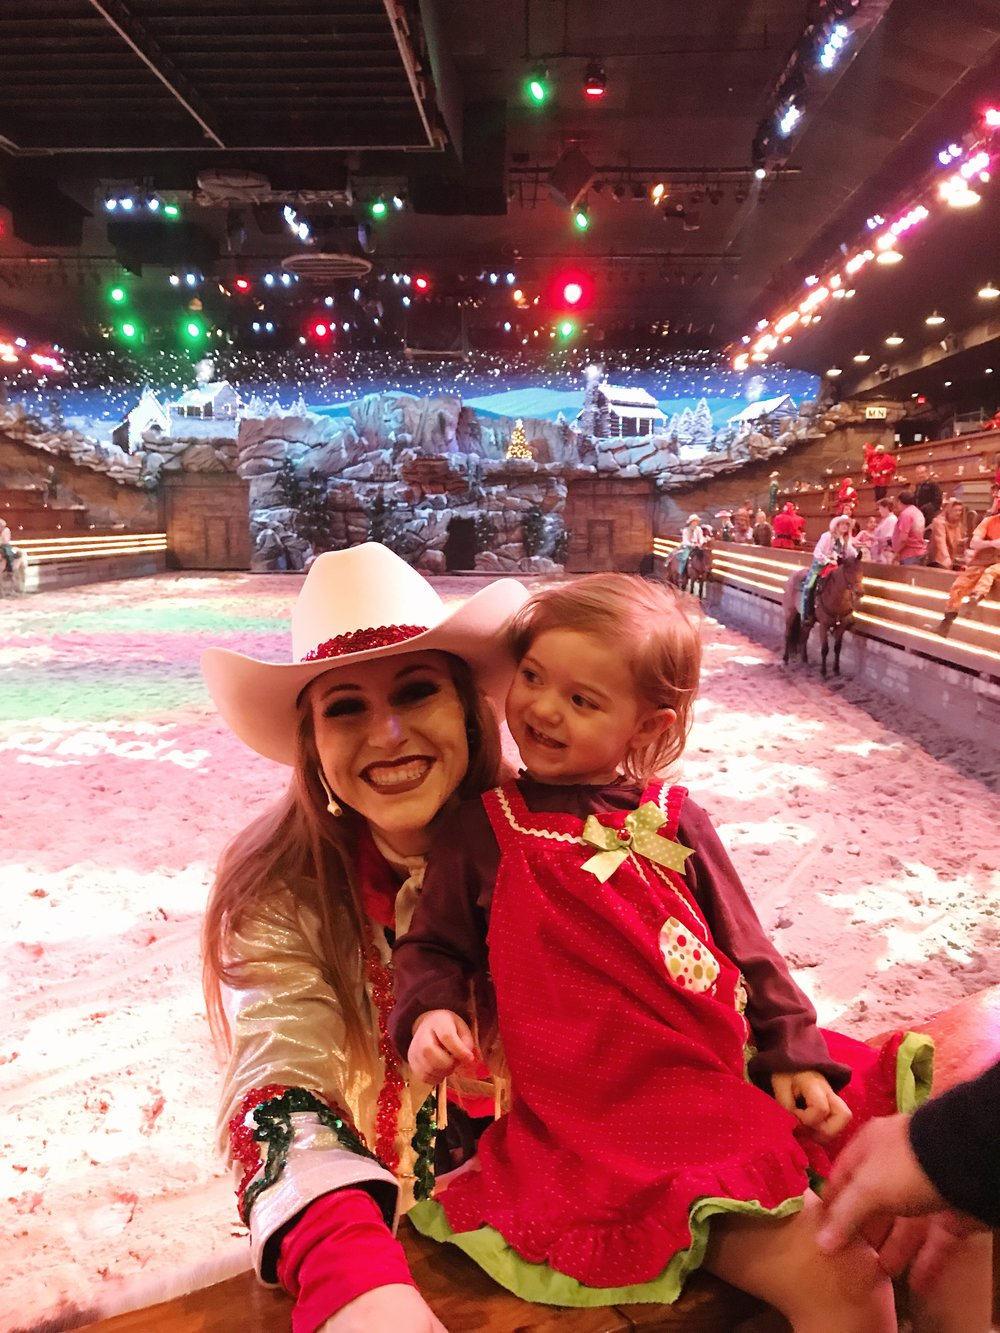 Dolly Parton's Stampede Christmas Show, Family Attractions in Pigeon Forge, TN